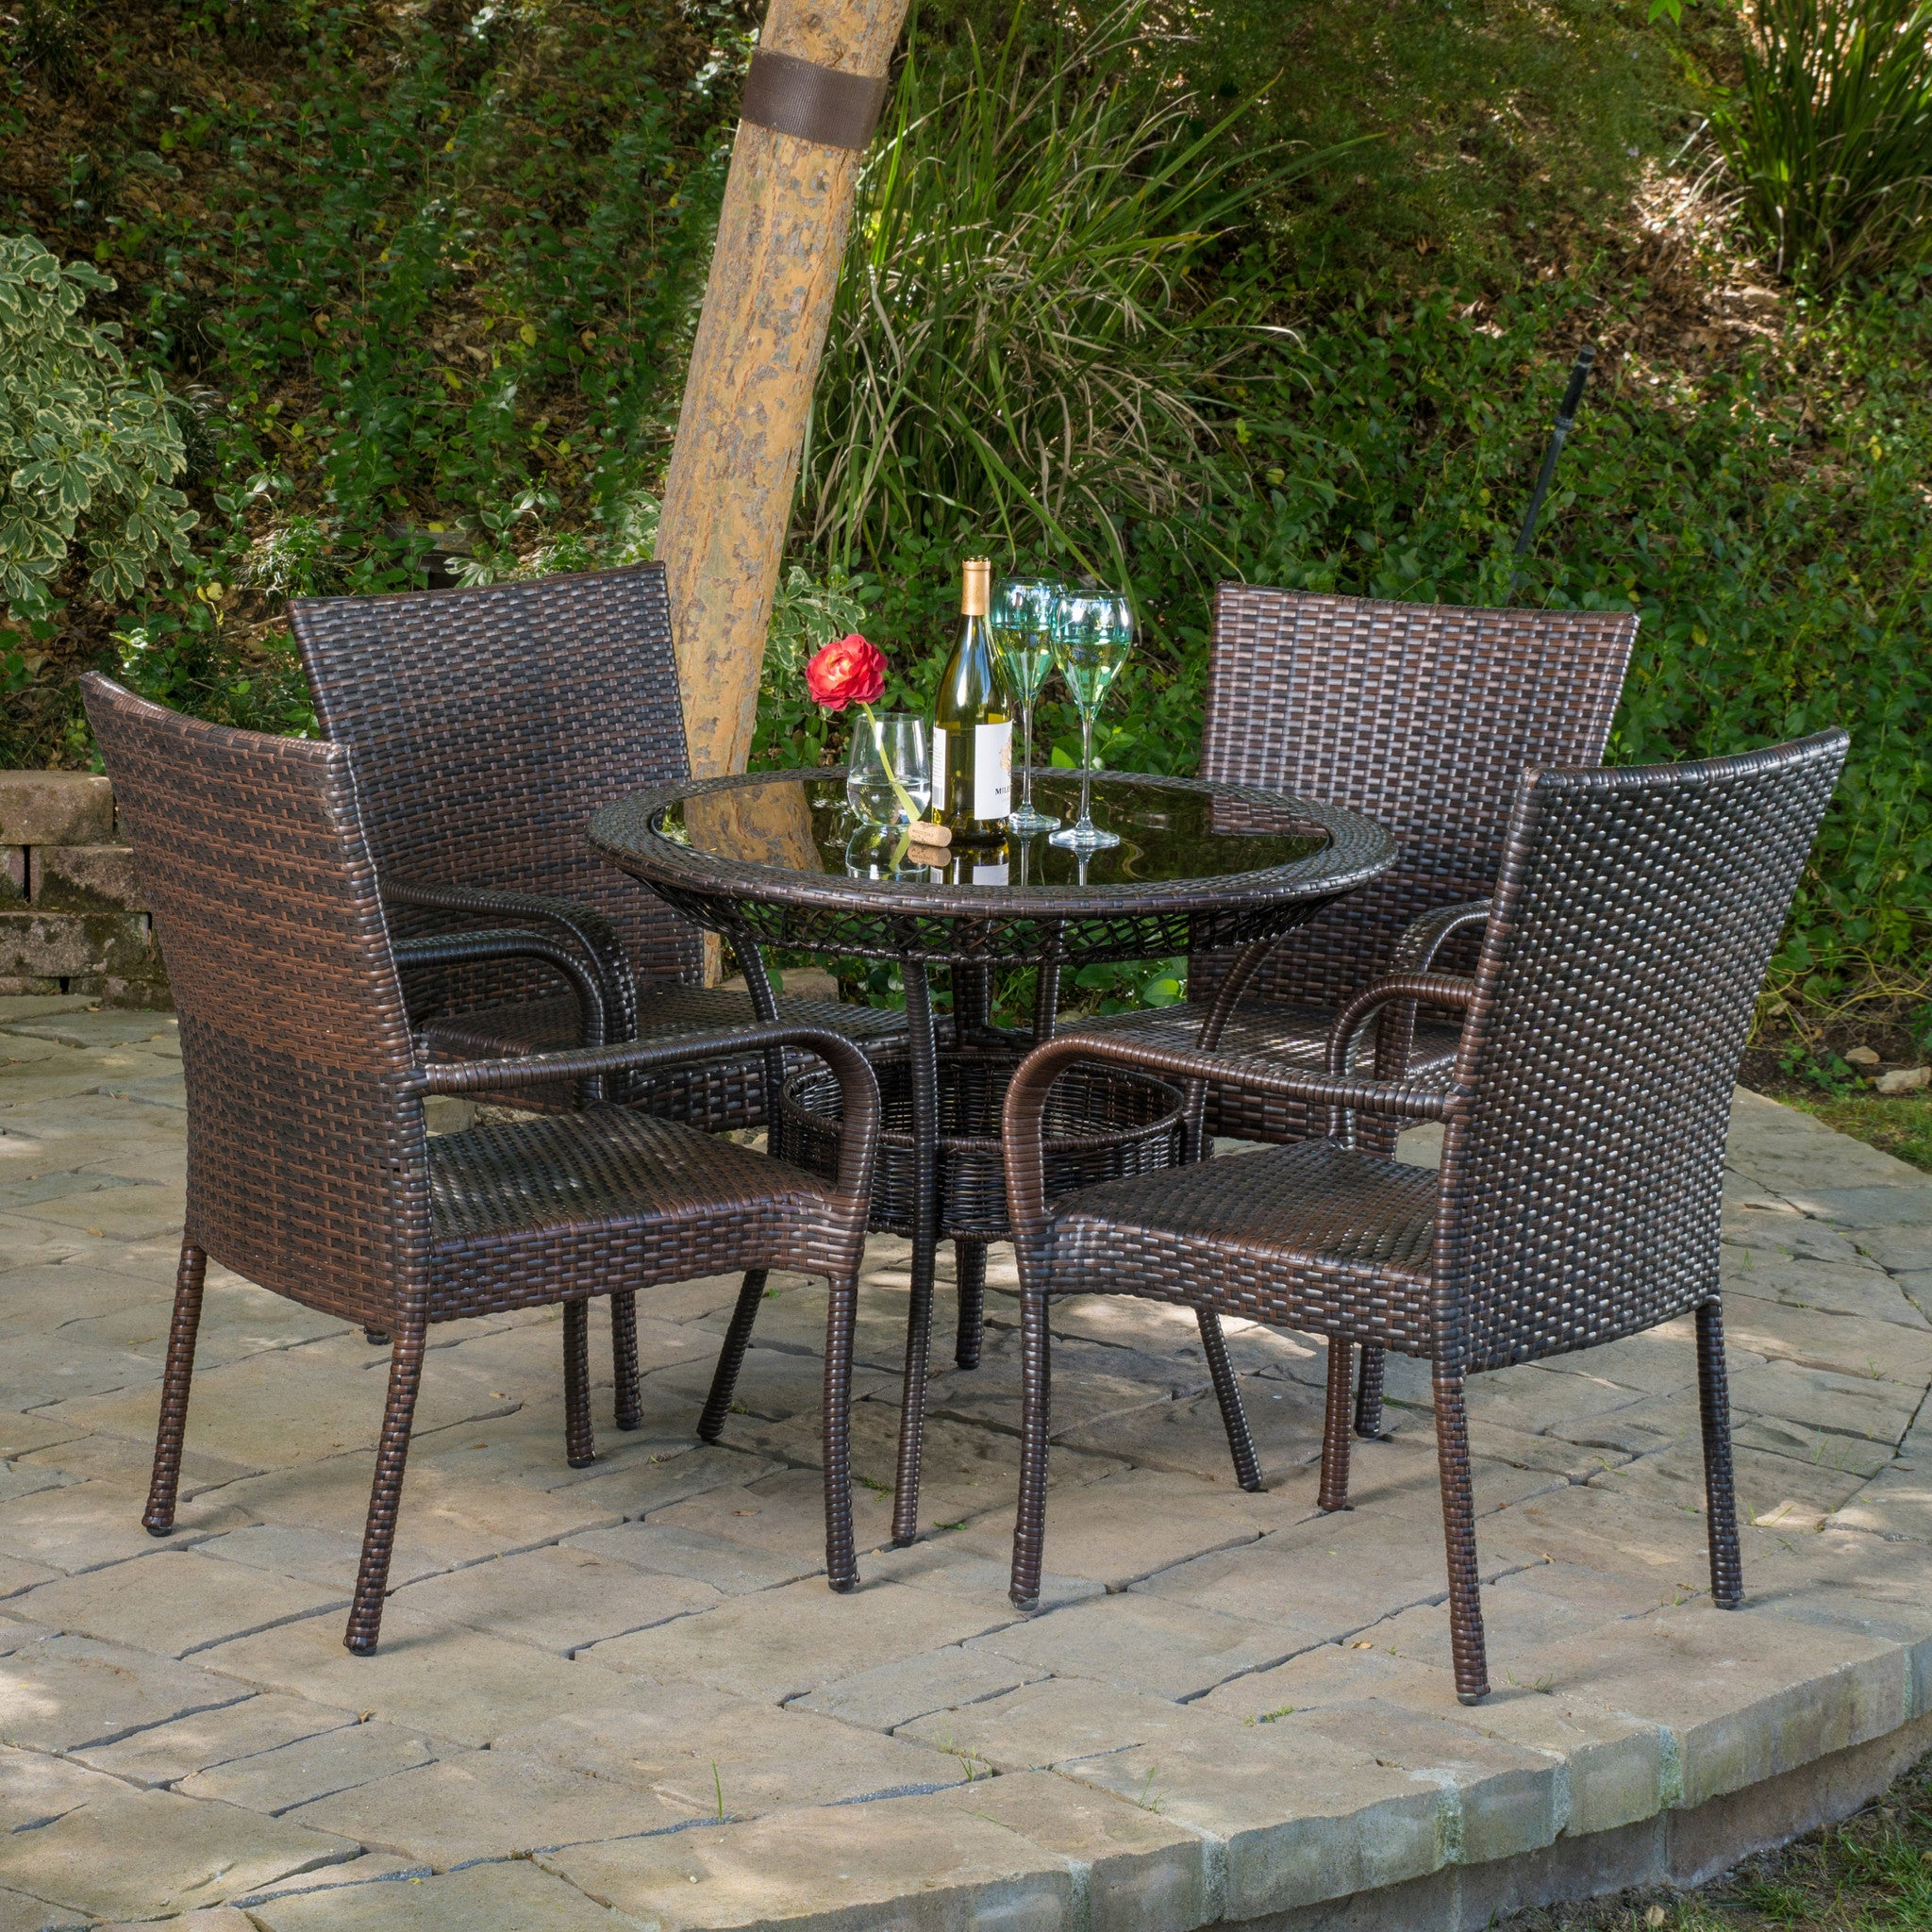 Outdoor Multibrown Wicker Dining Set foto